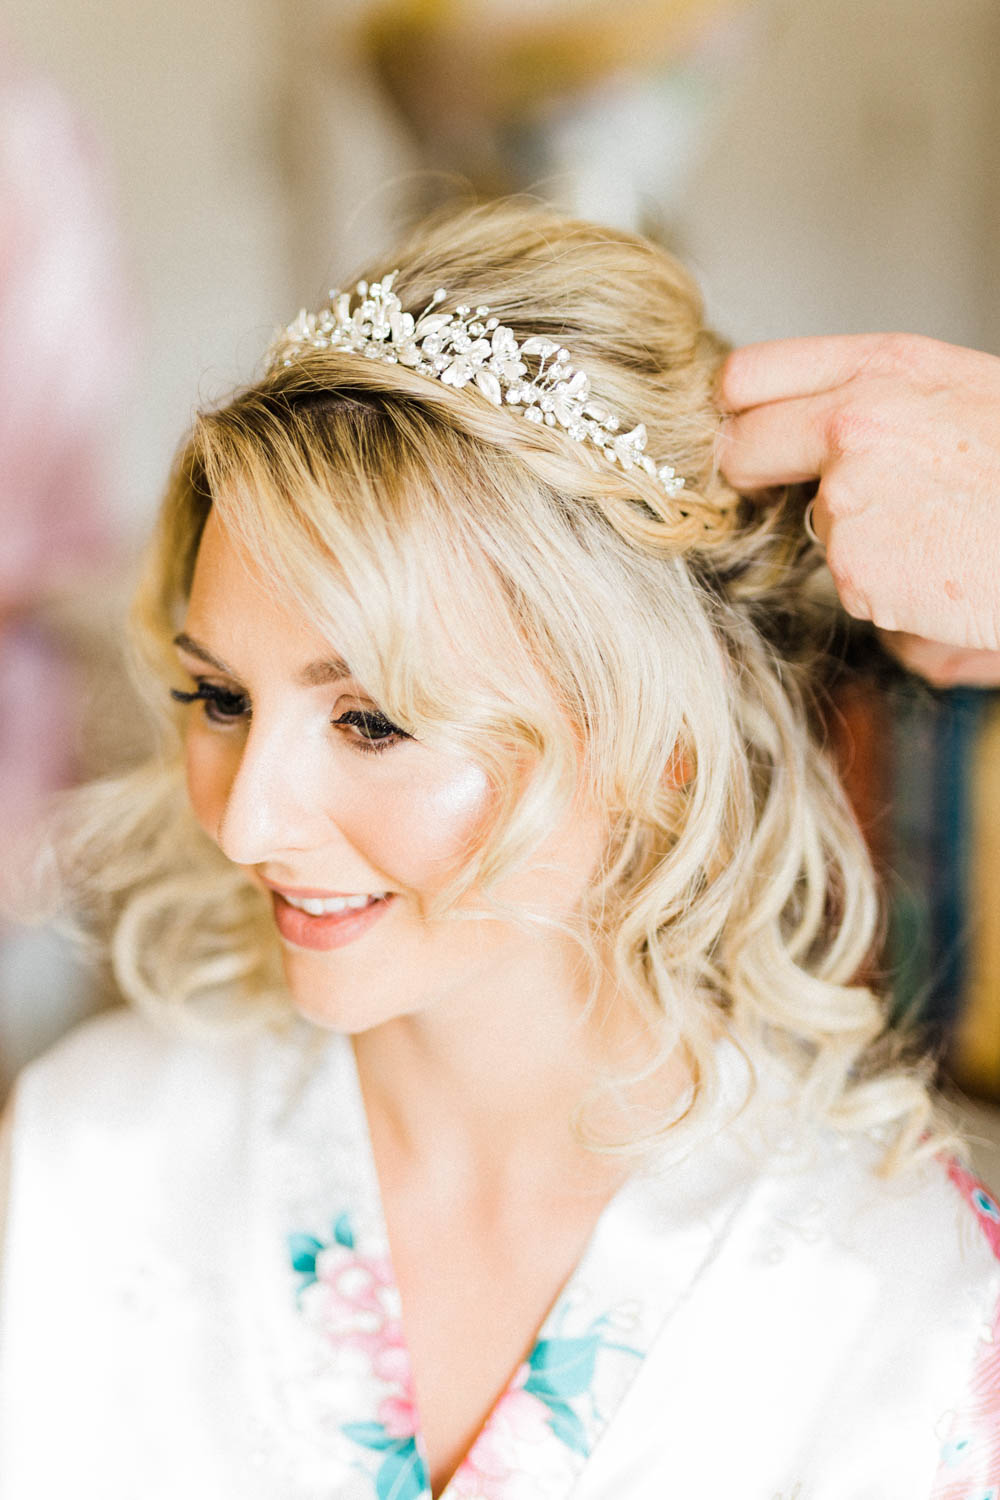 Special-Day-Photography-The-Manor-House-Hotel-Moreton-in-Marsh-Moreton-In-Marsh-Summer-Wedding-A-bridal-tiara-for-a-wedding.jpg